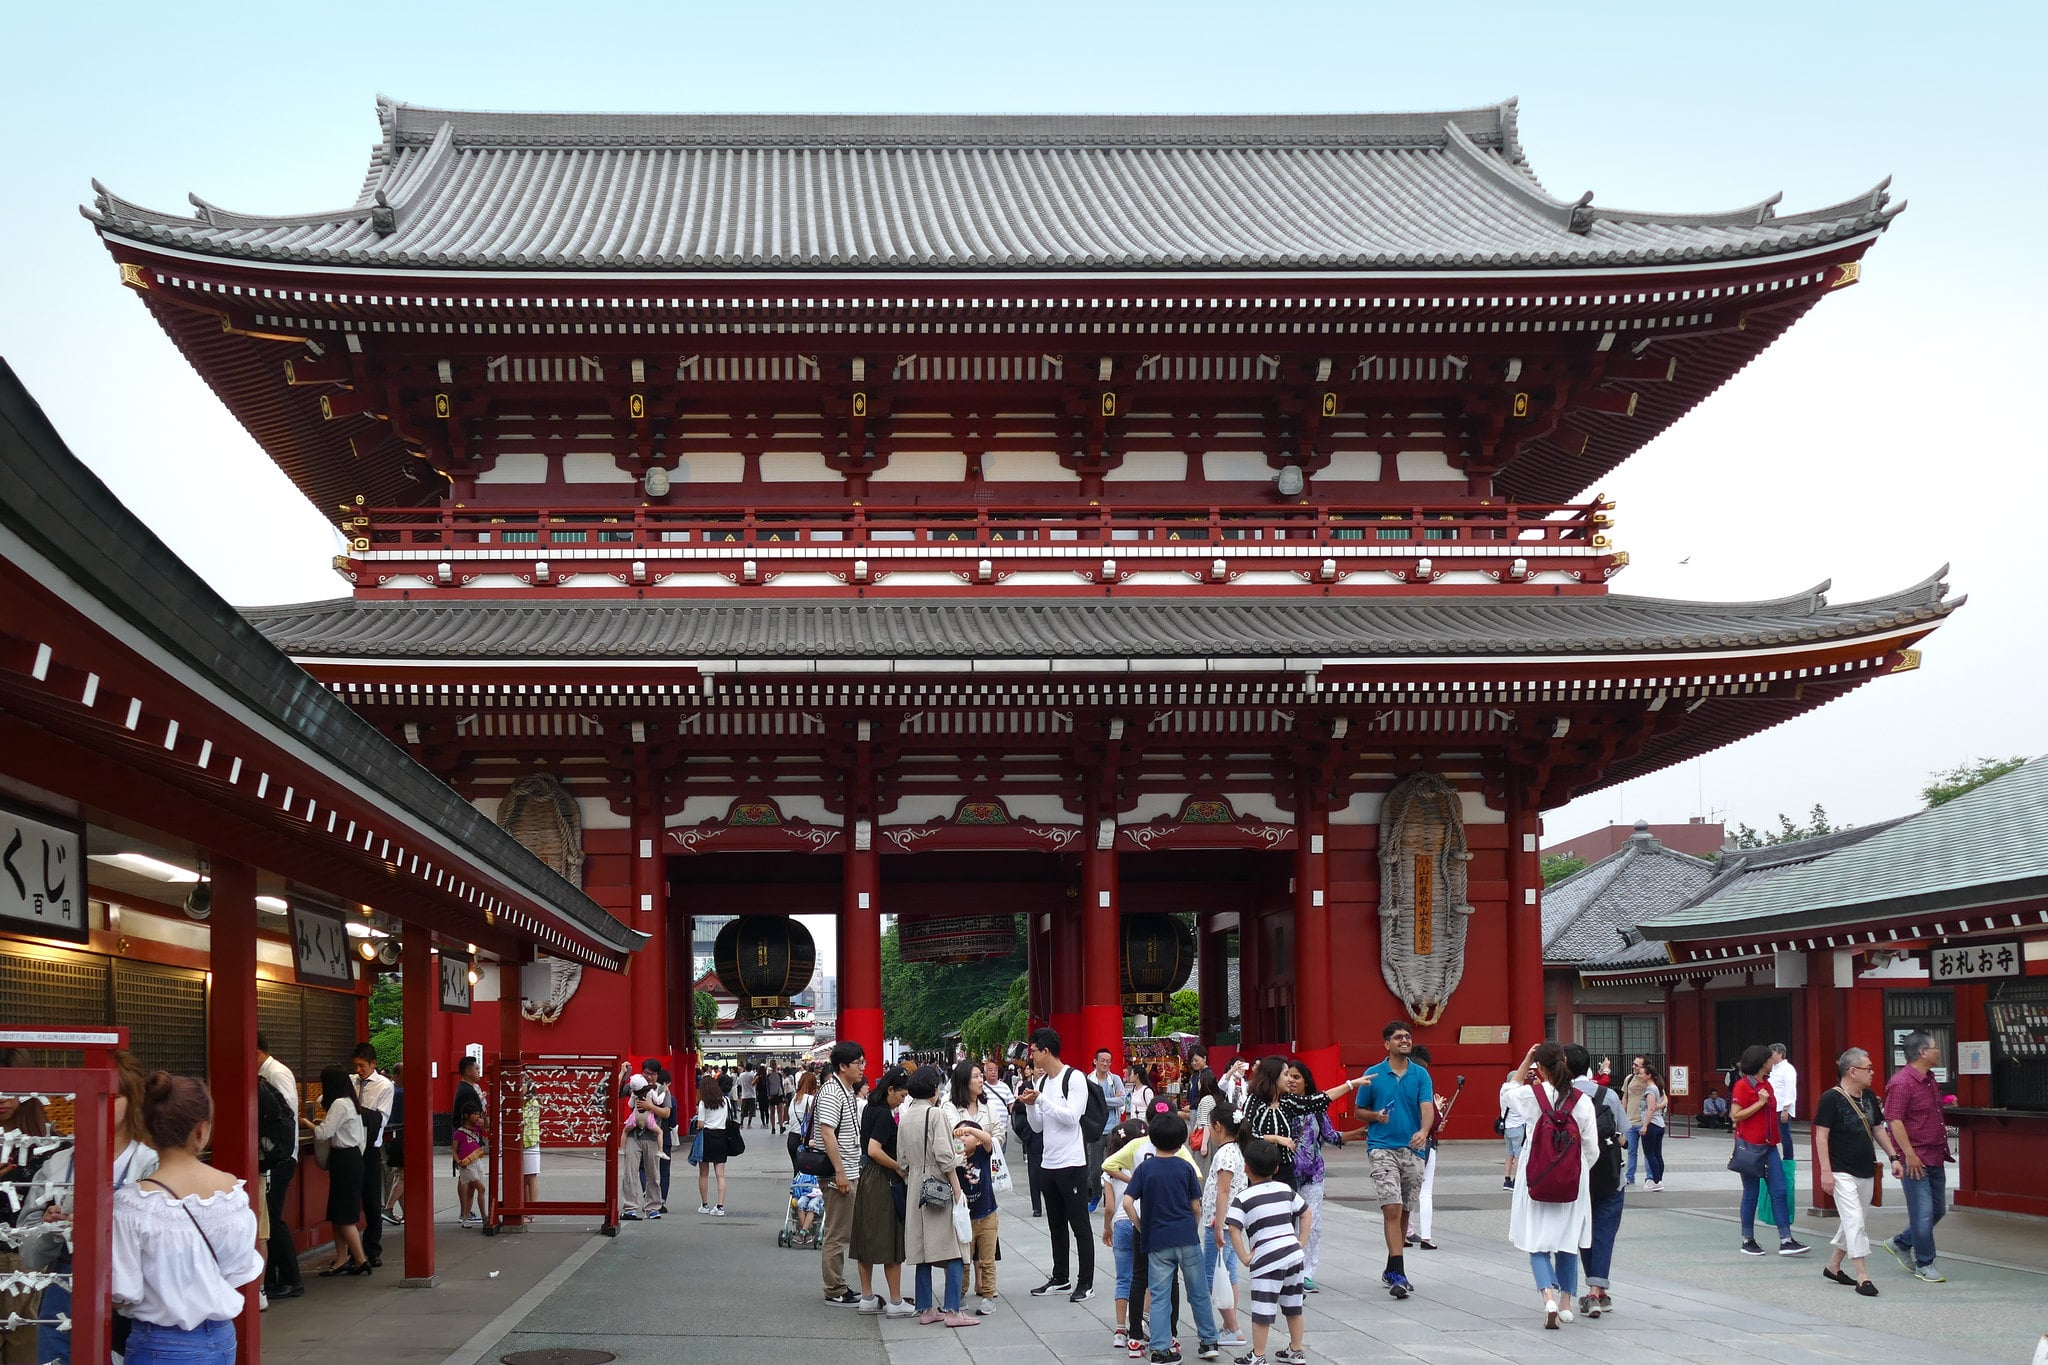 What to do in Tokyo in 5 days? Check out historic wonders like Chiyoda City